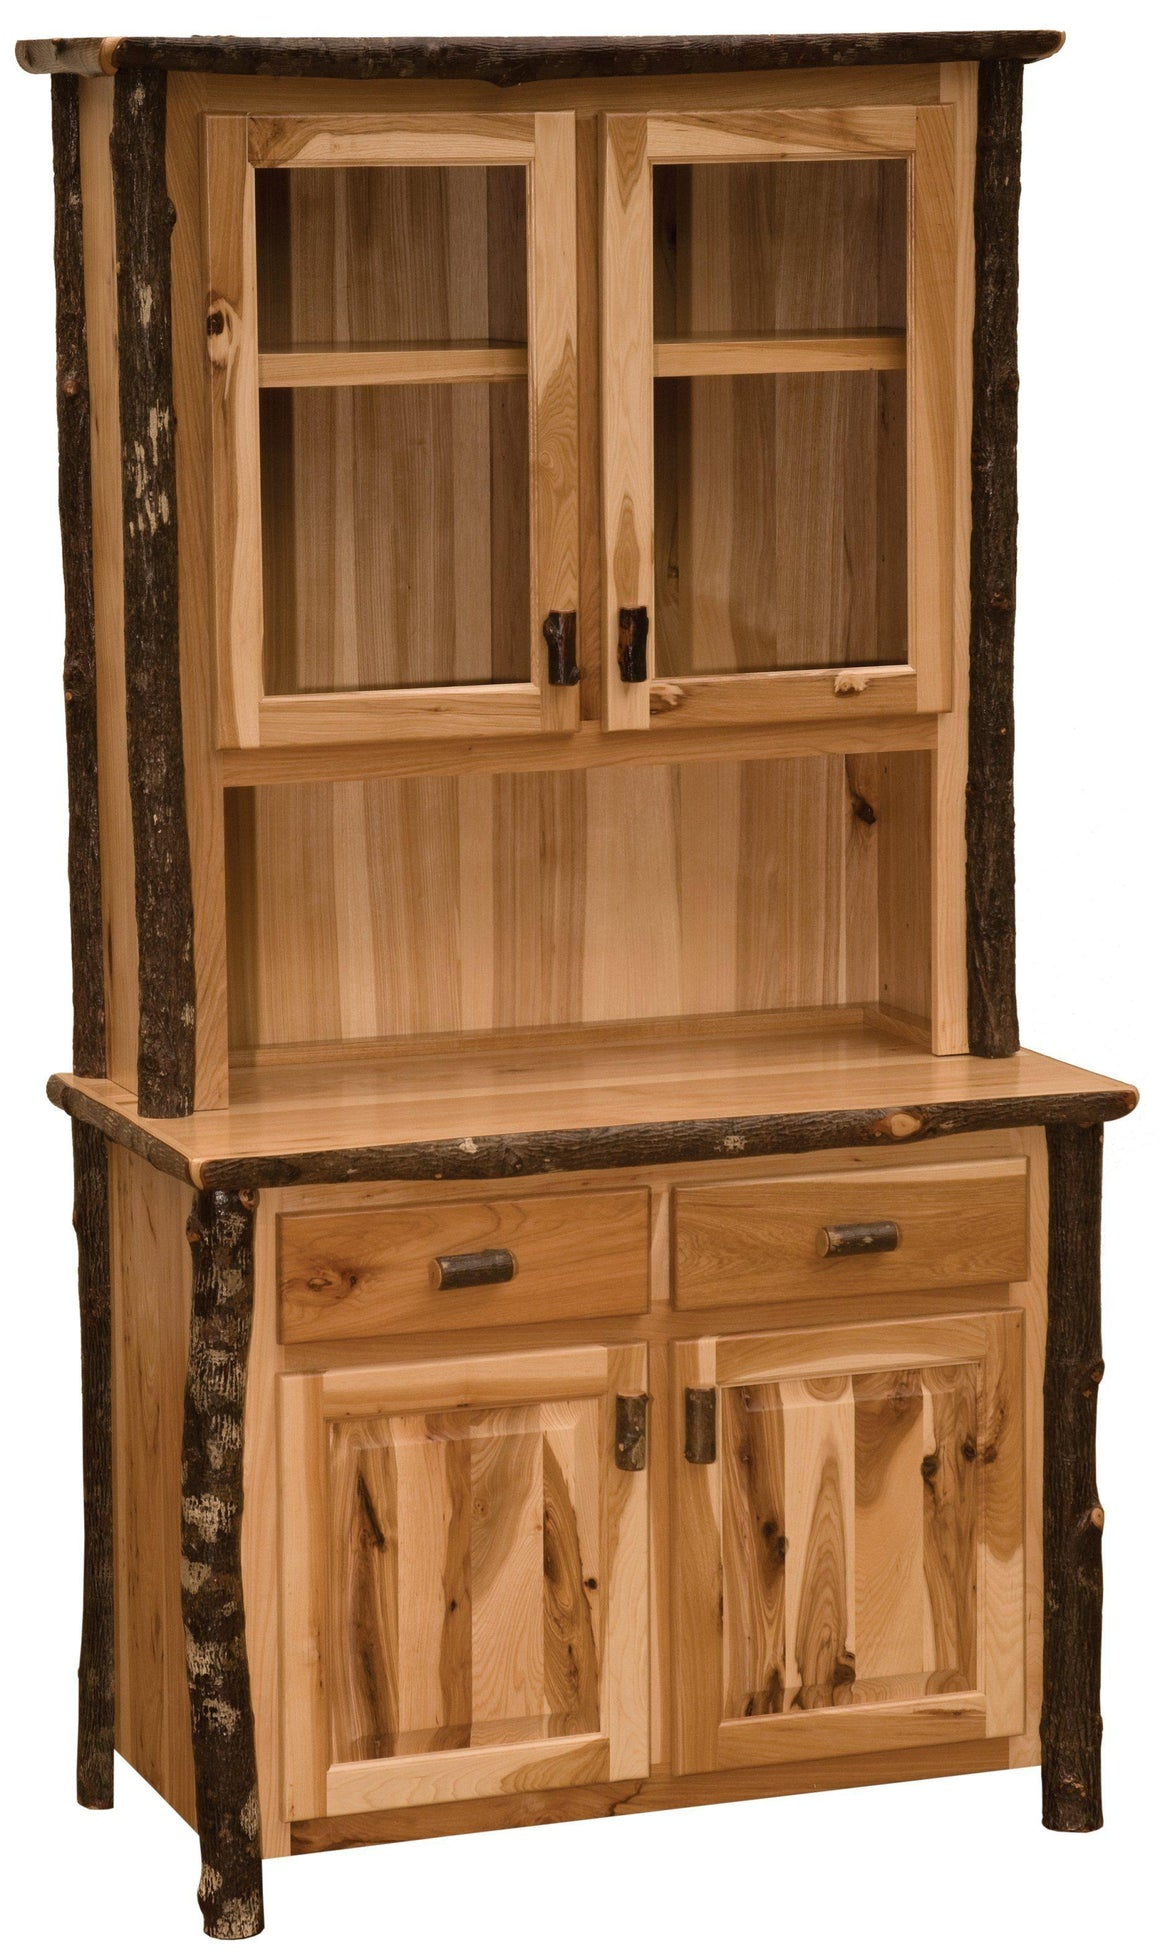 Hickory Log Buffet and Hutch - 48-inch  - Standard Finish - Rustic Deco Incorporated